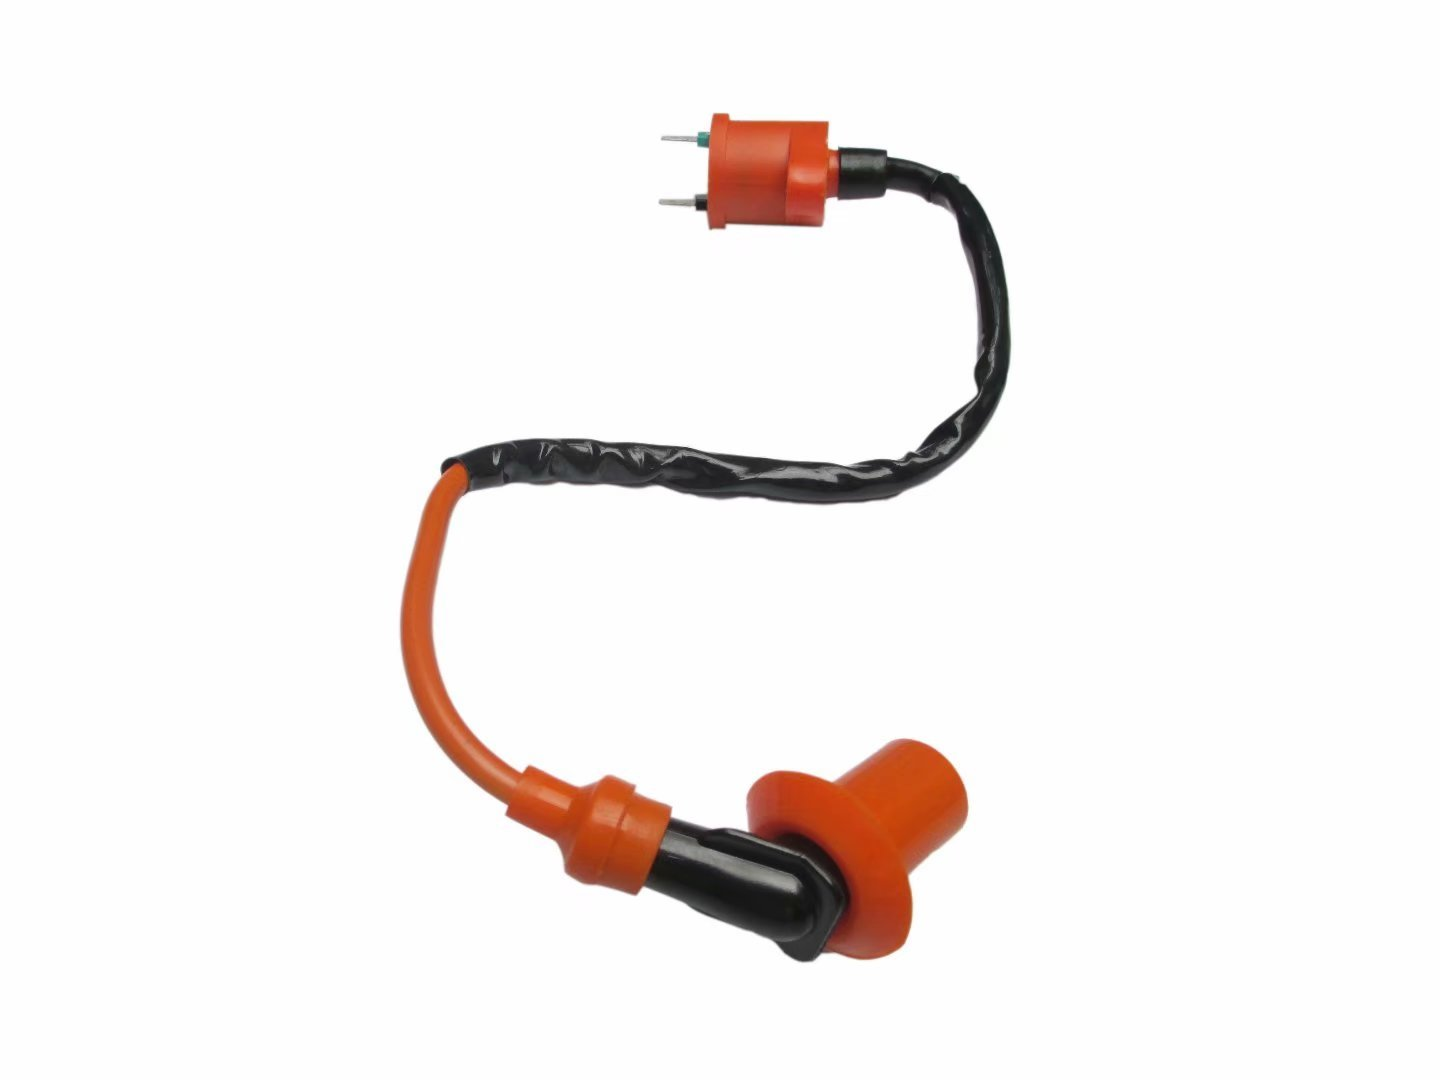 Performance Ignition Coil For Honda TRX250 RECON ES 1998 1999 2000 2001 2002 2003